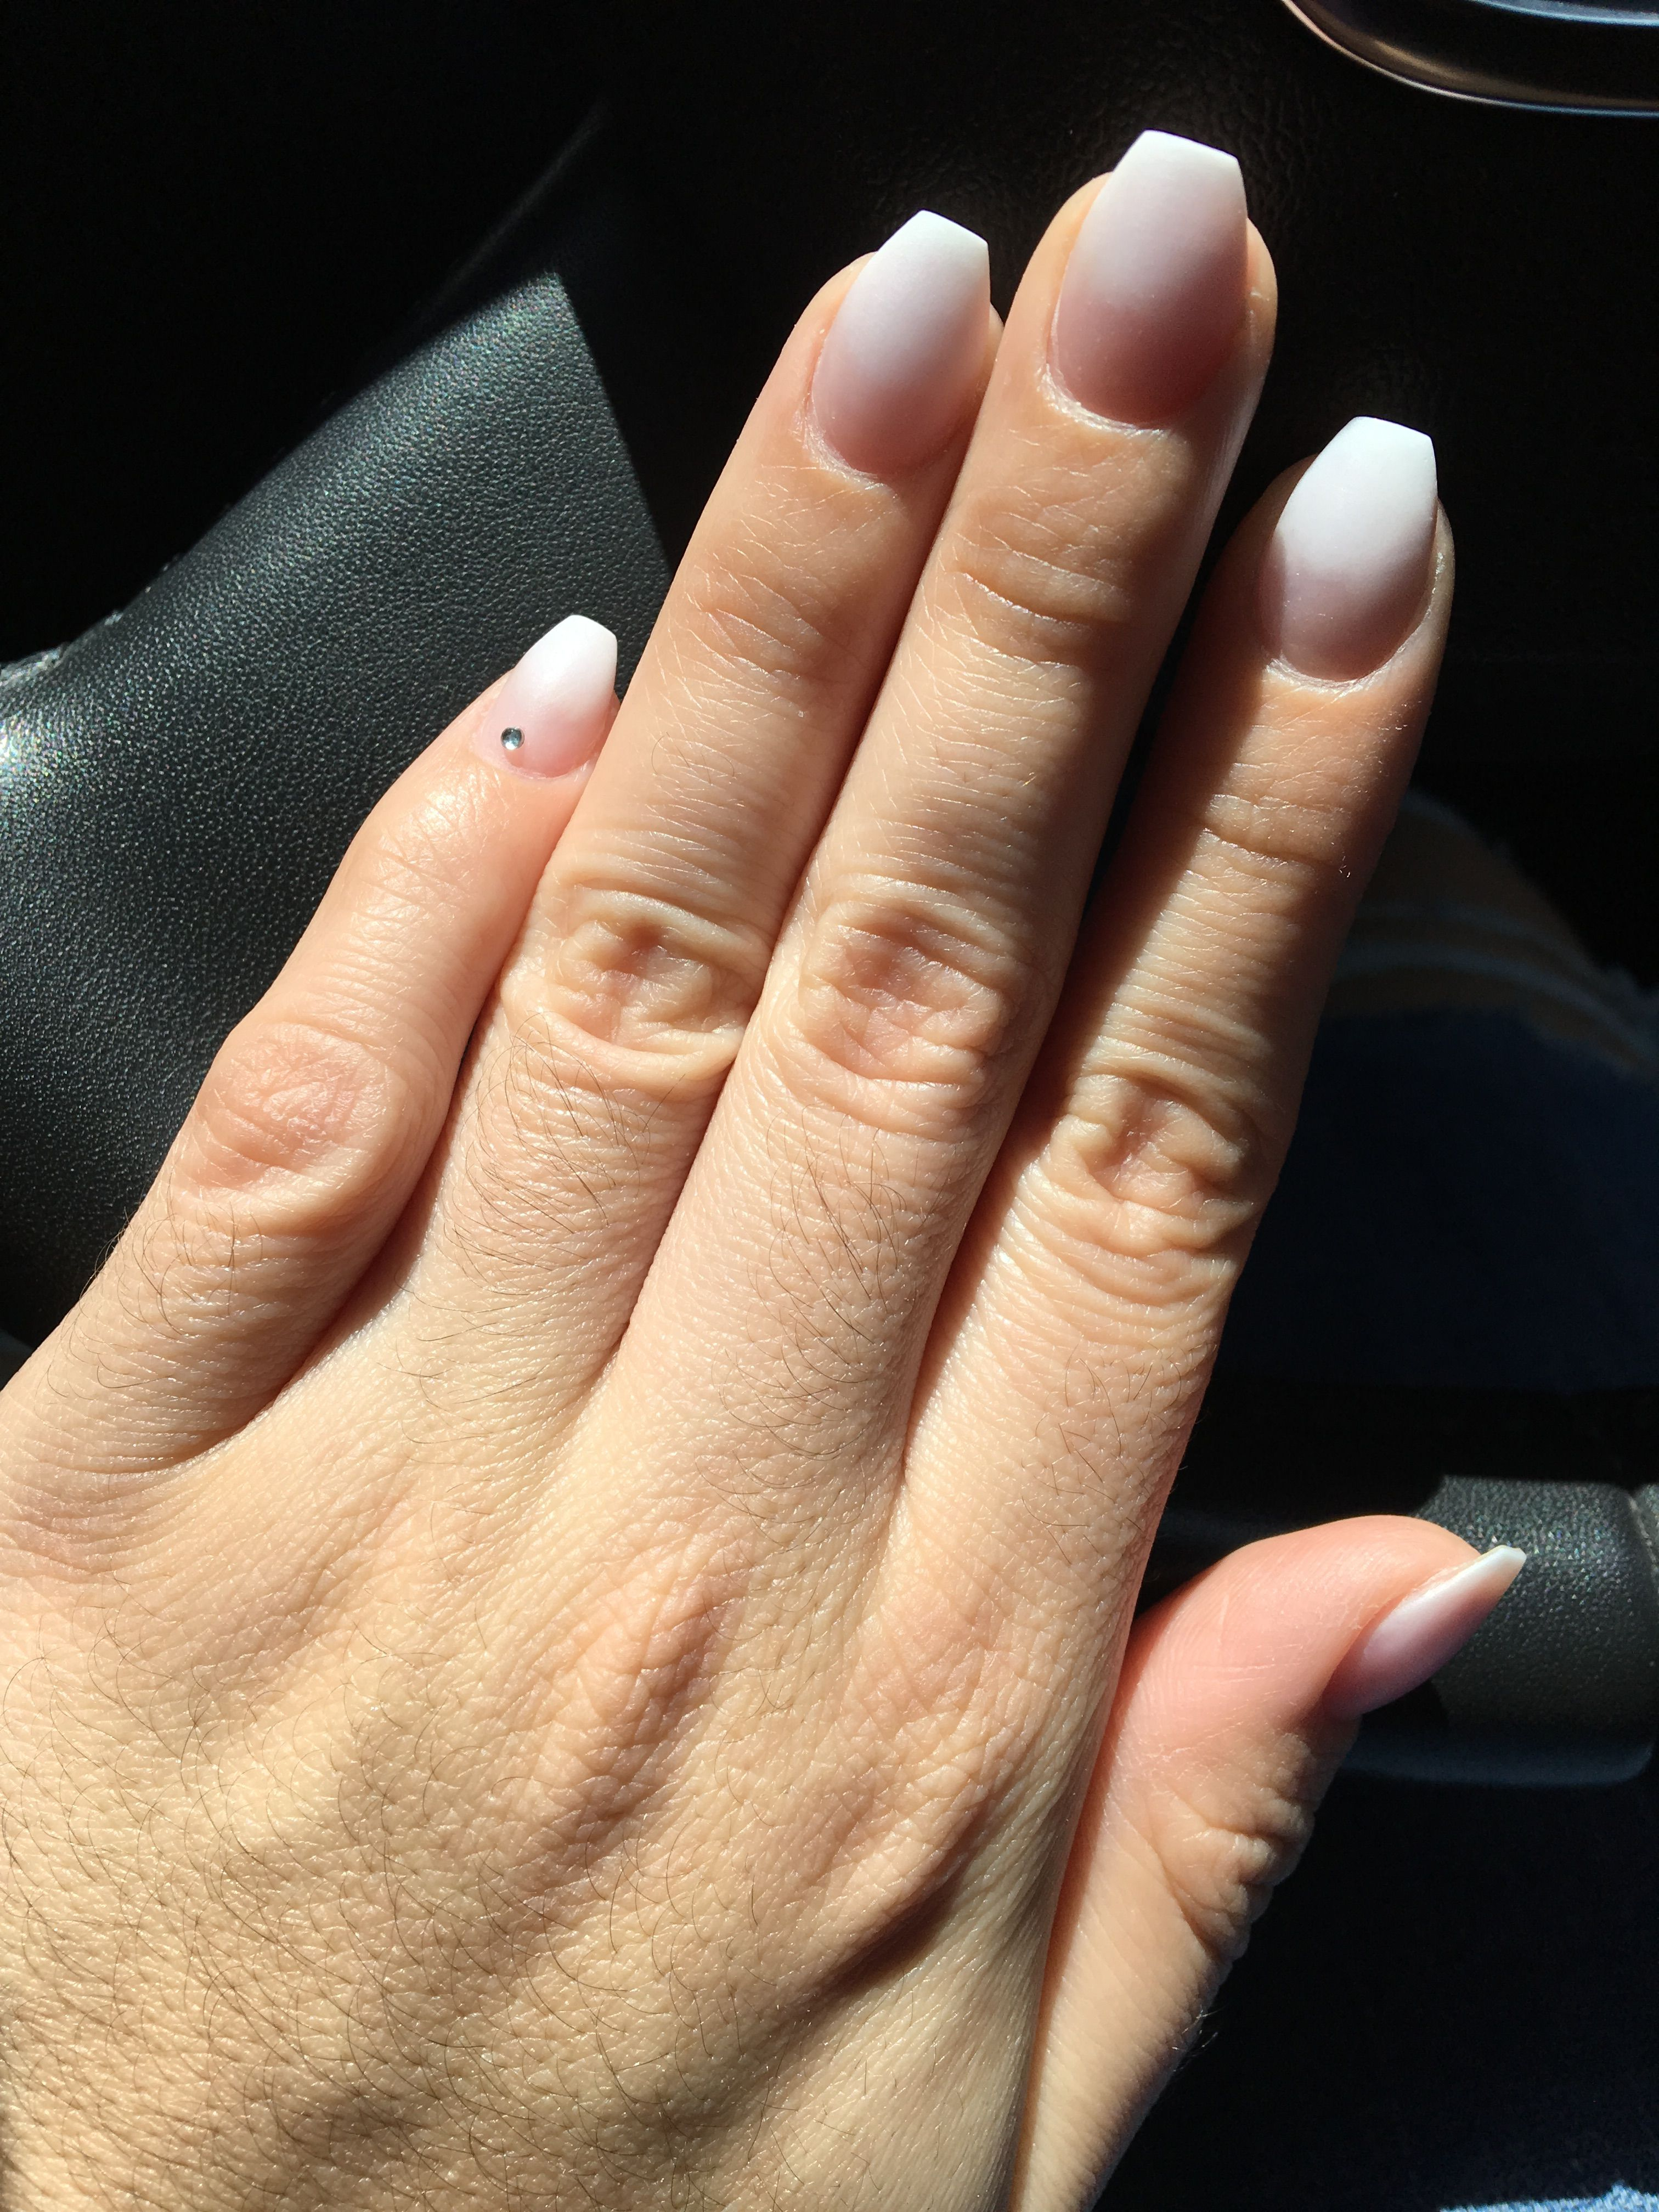 French ombré coffin nails | My nails | Pinterest | Coffin nails